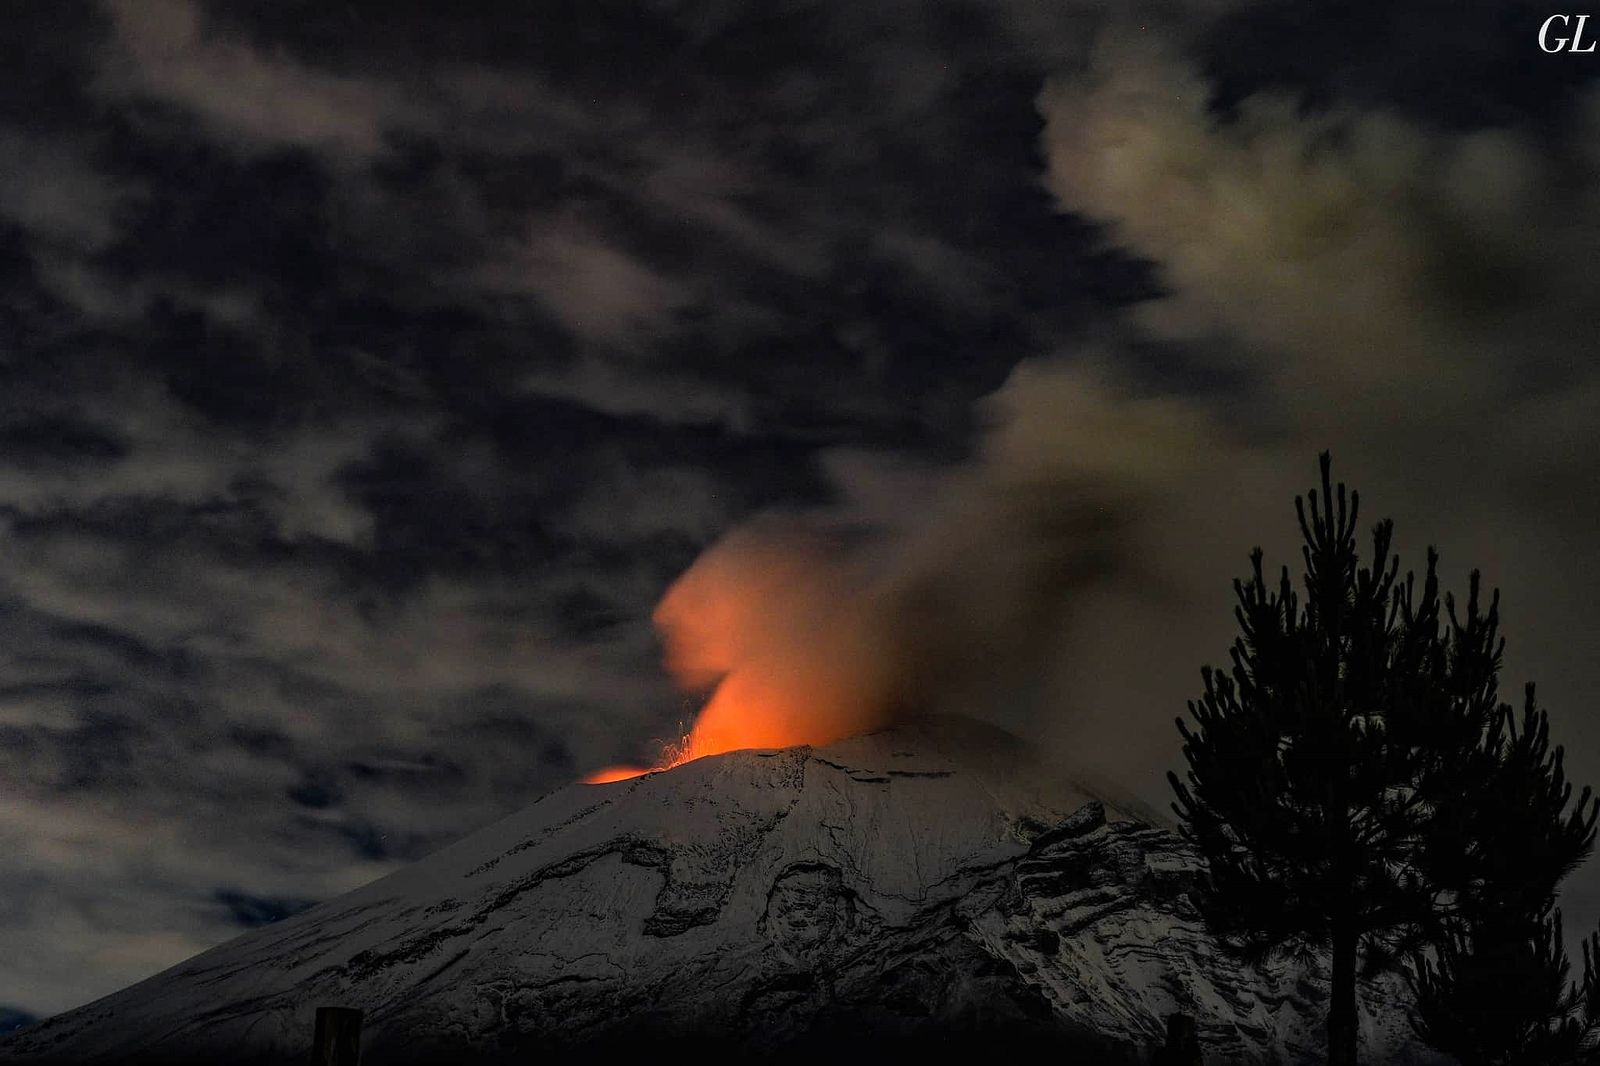 Popocatépetl - nocturnal incandescence and ballistic projections - photo Luis Garcia 23.07.2020 / Twitter